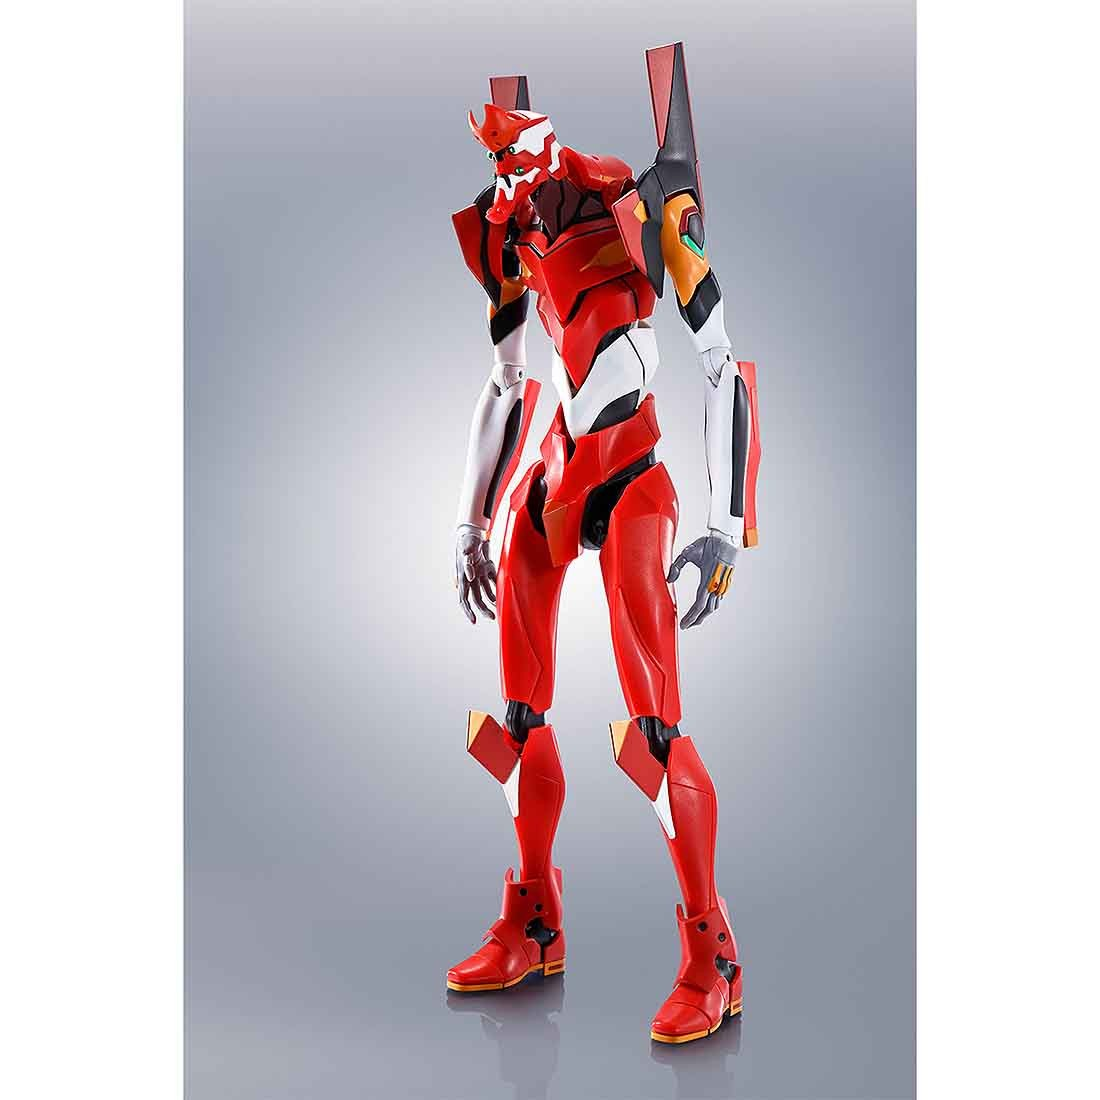 PREORDER - Bandai The Robot Spirits Rebuild Of Evangelion Side Eva Evangelion Production Model-02 +Type S Components Figure (red)